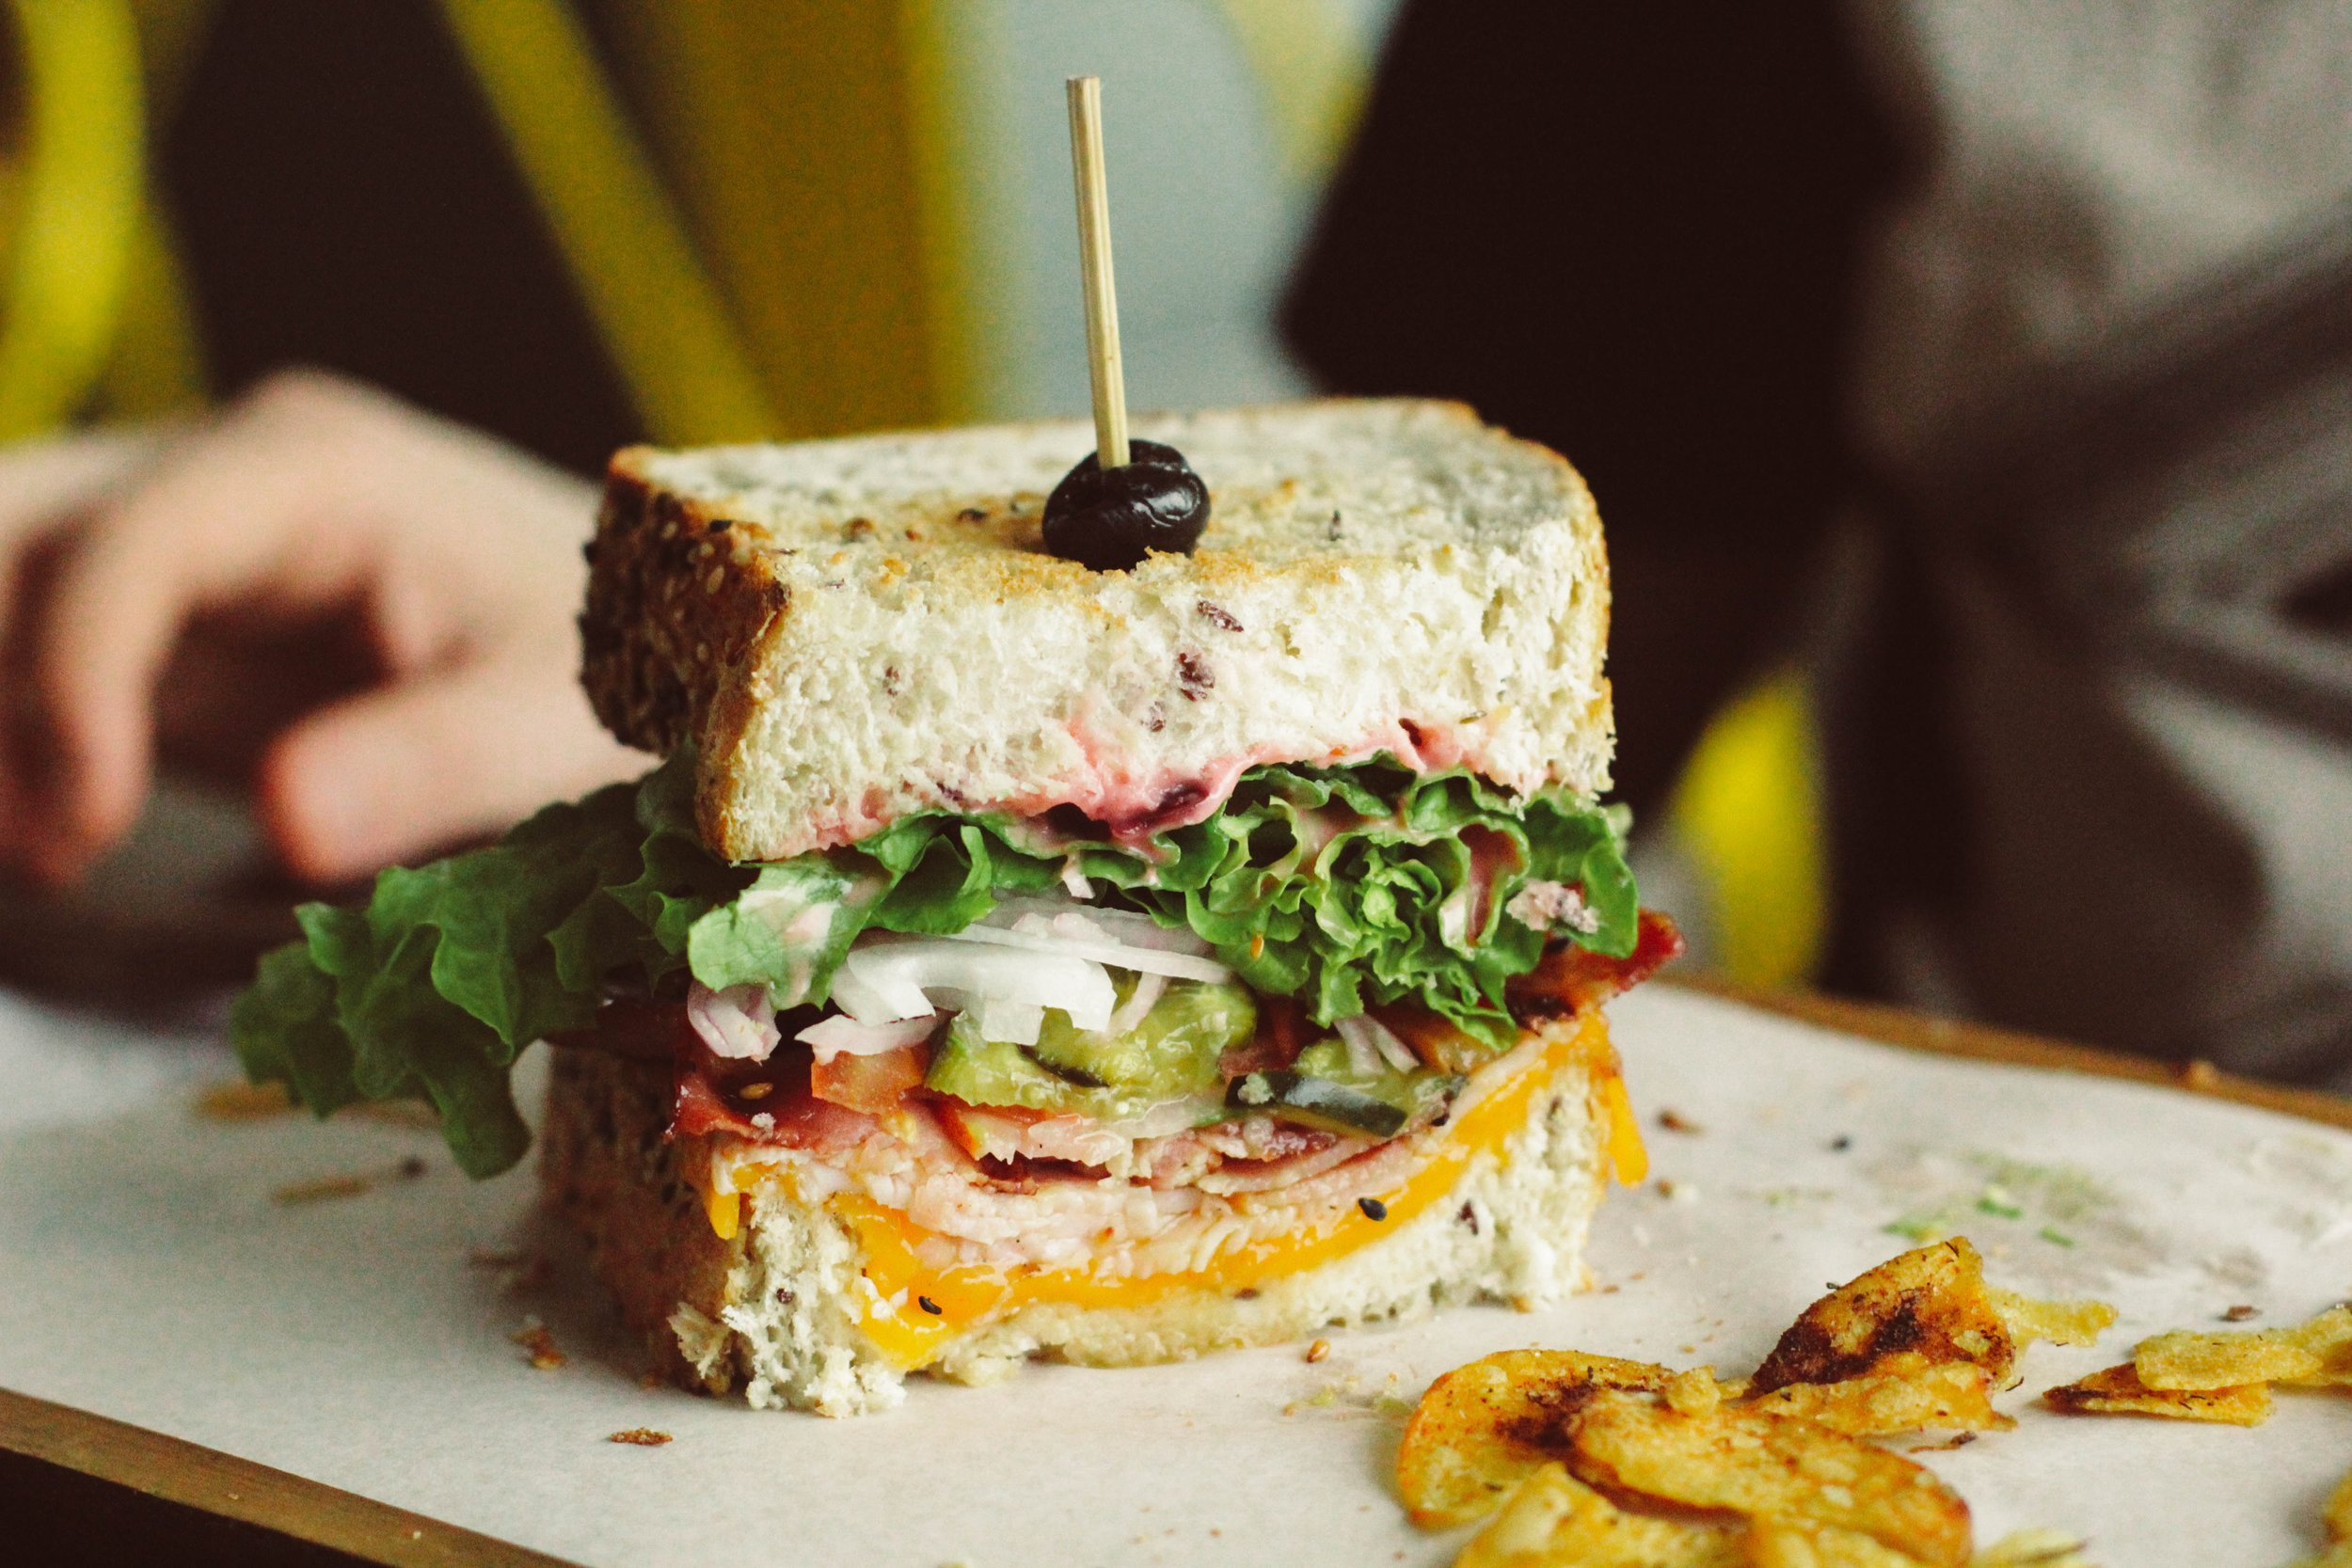 The life changing reason you should pack your lunch - By Limahl Asmall